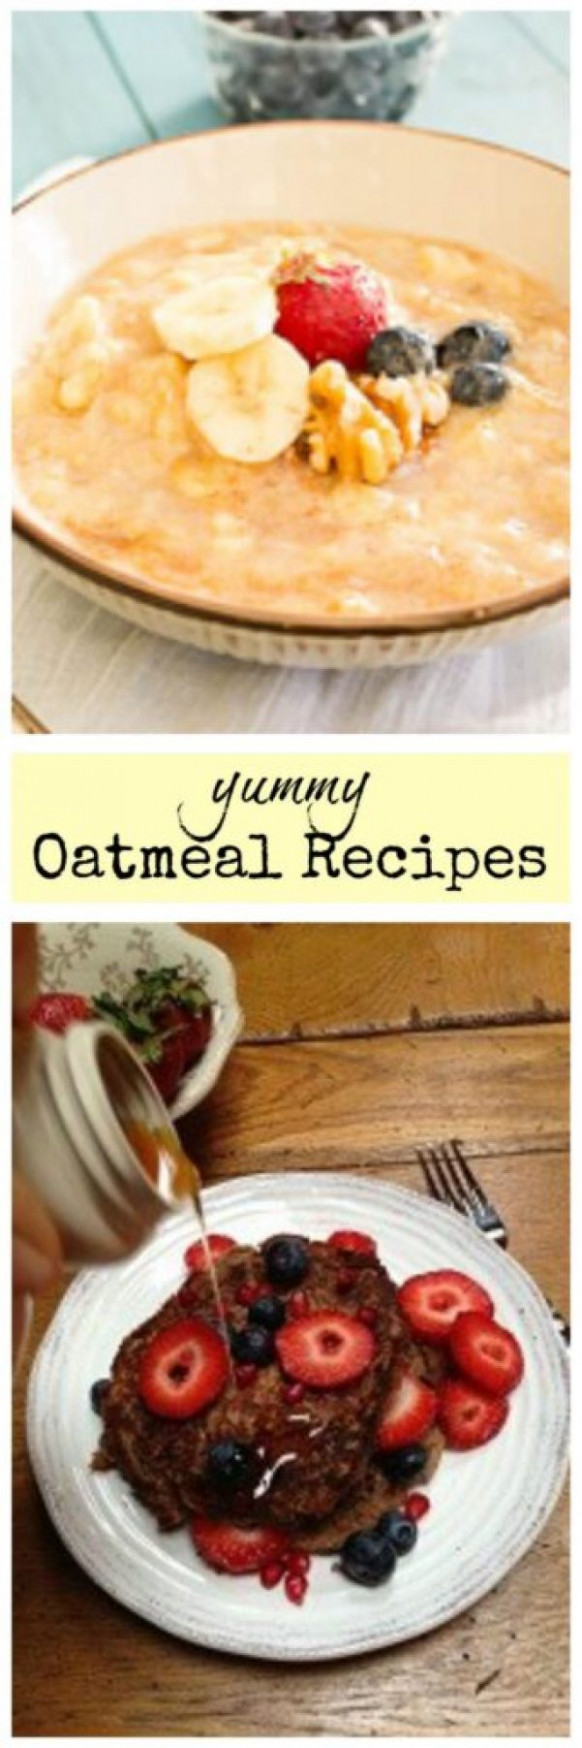 Delicious Recipes Using Oatmeal You Can Make Ahead of Time - healthy recipes you can make ahead of time